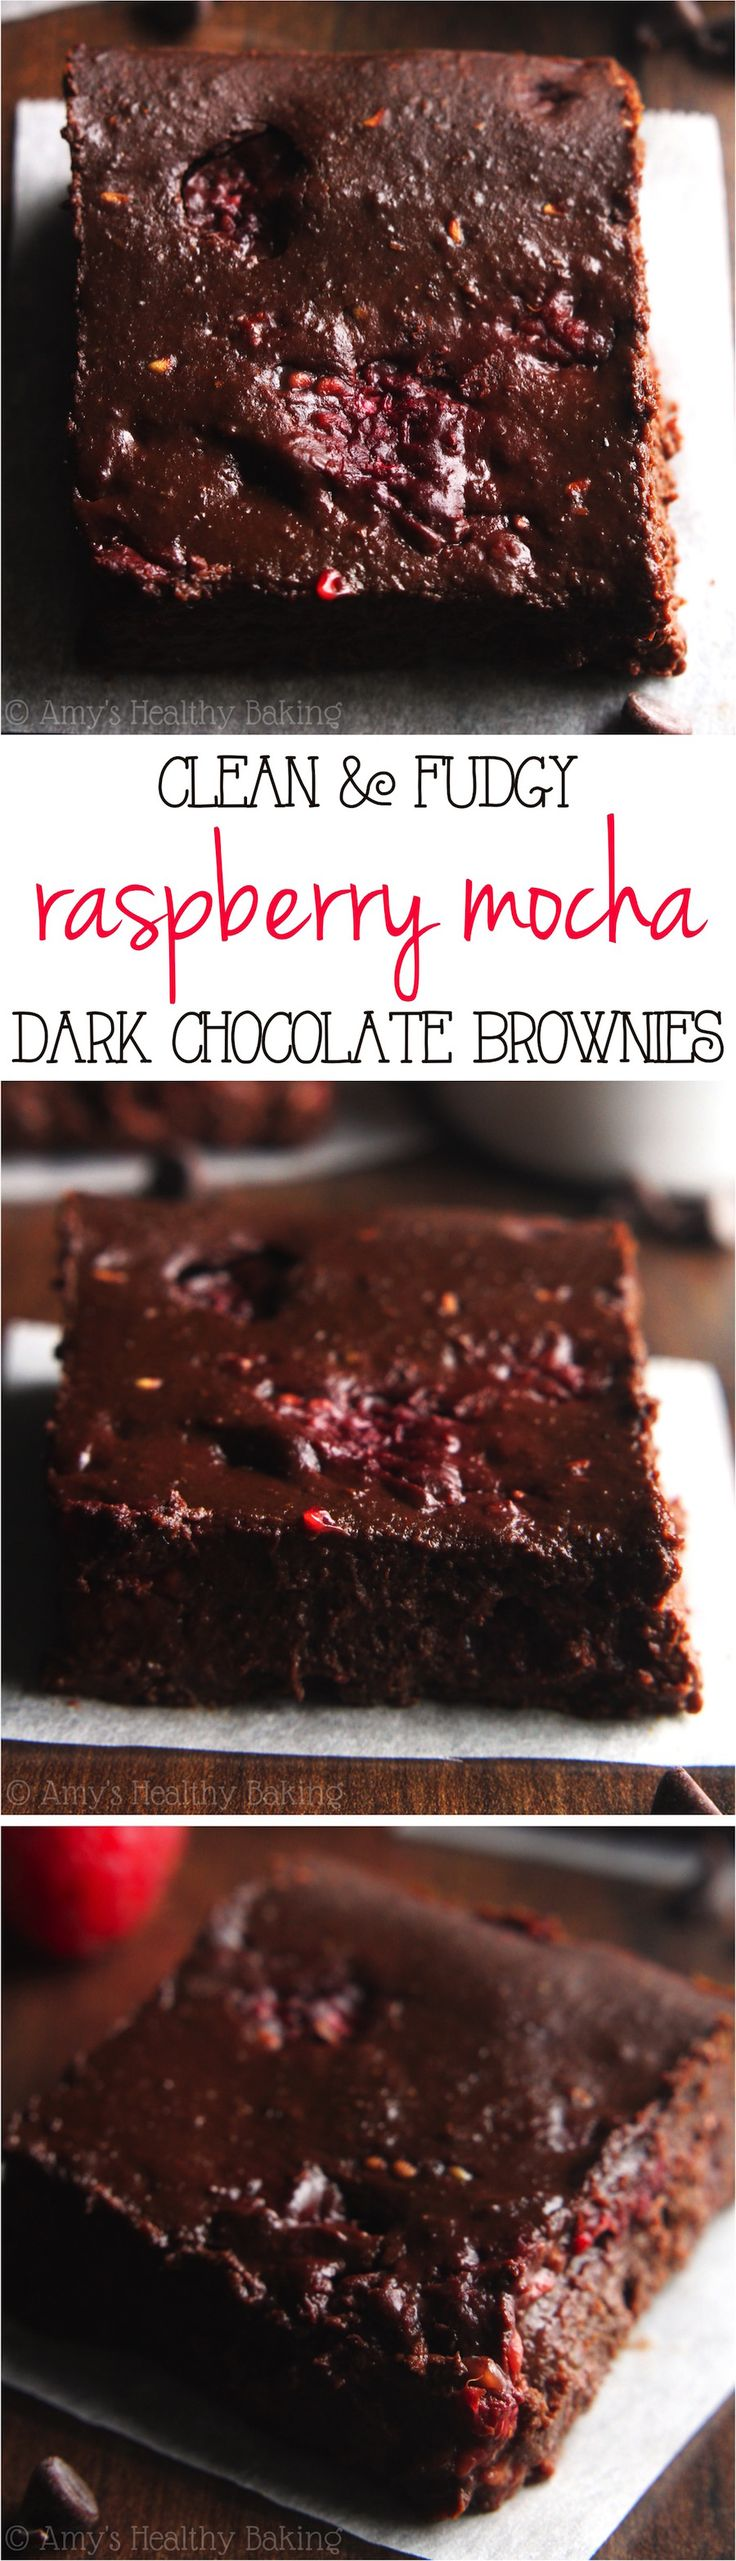 Clean-Eating Raspberry Mocha Brownies -- these skinny brownies don't taste healthy at all! They're insanely rich, as easy as a box mix & only 80 calories!